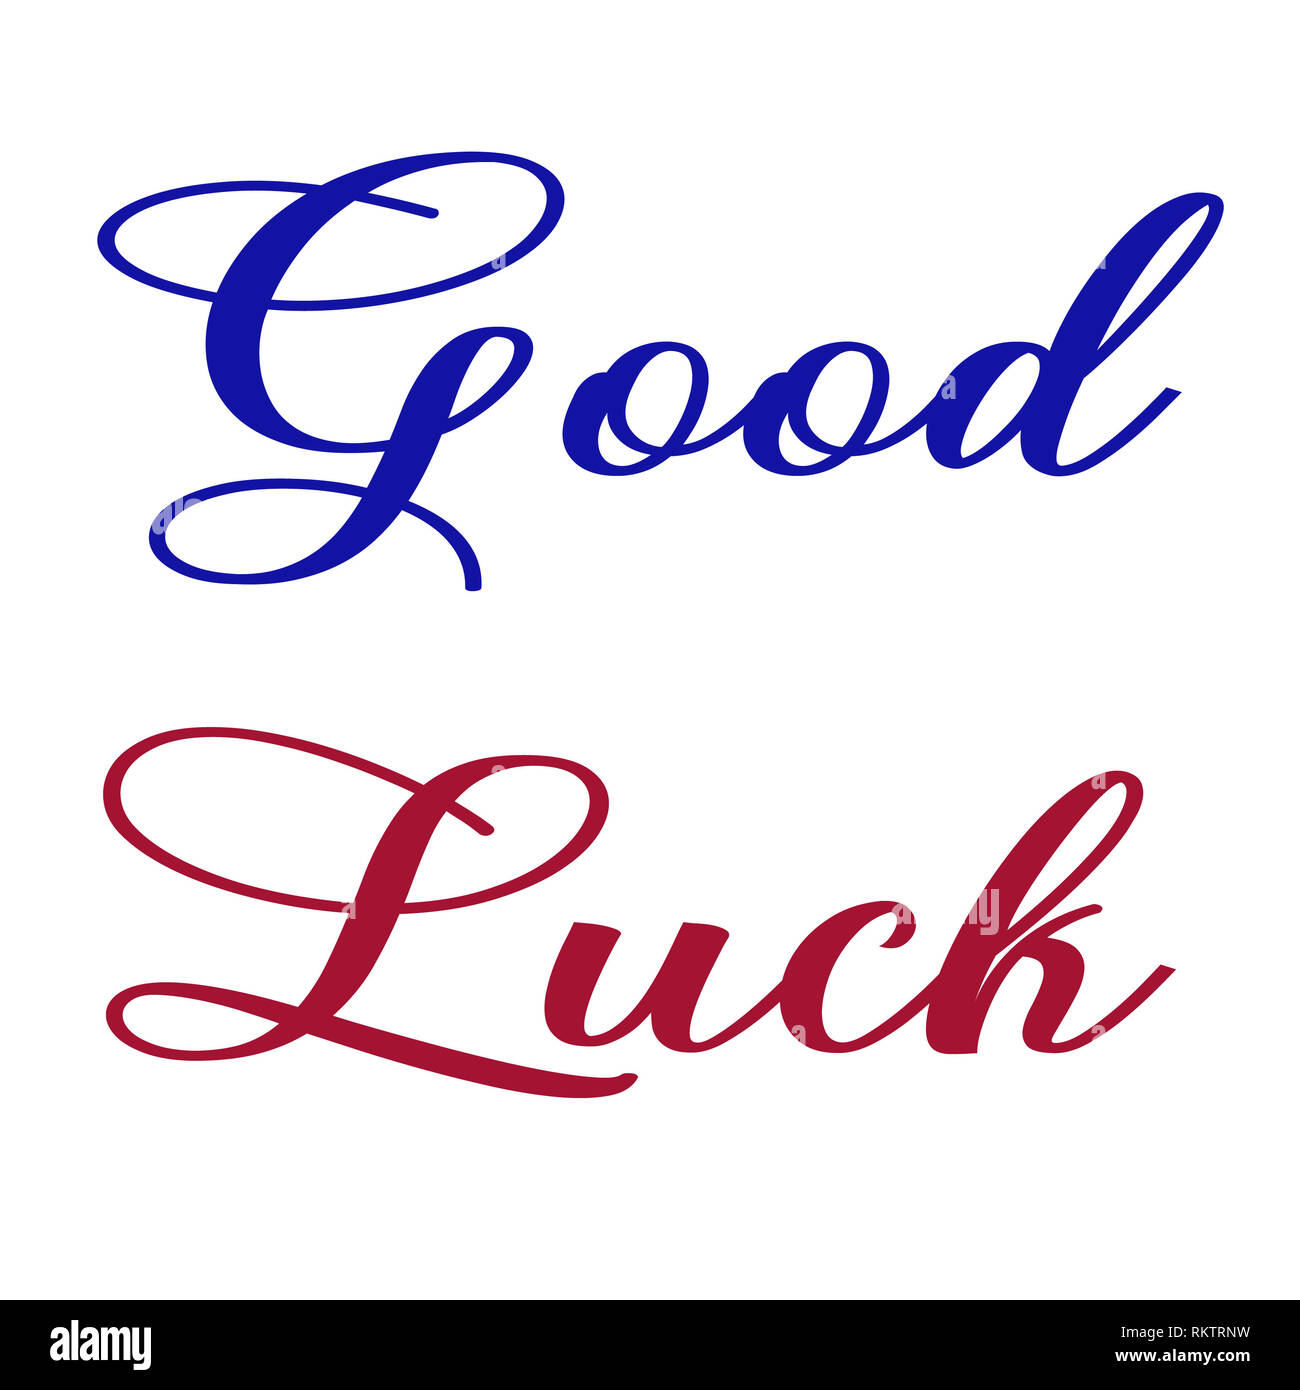 Good luck wishes with amazing styles - Stock Image